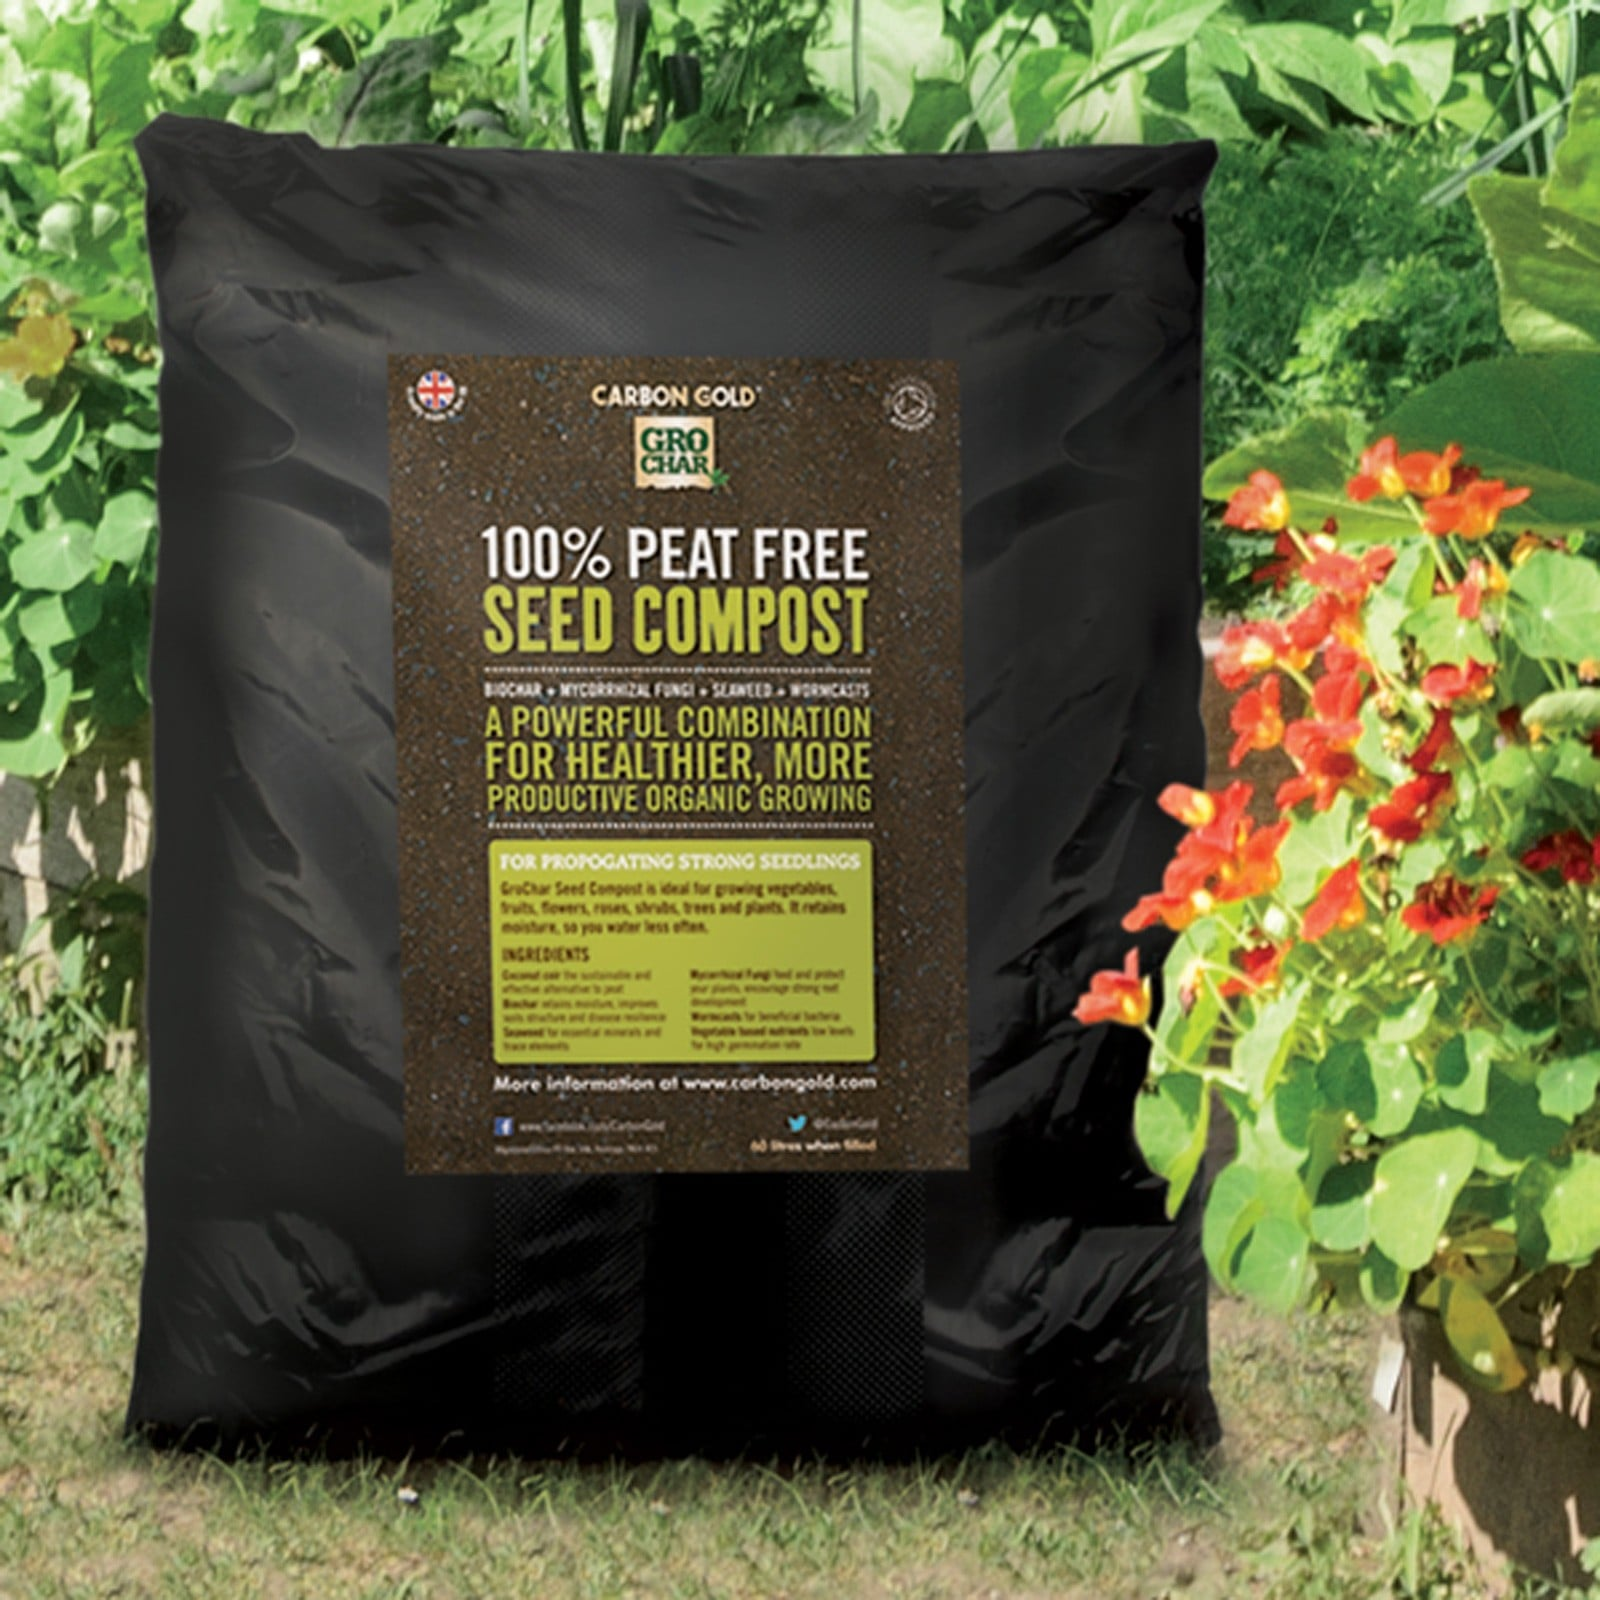 This Soil Association Approved Grochar Biochar Seed Compost Is The Growing Medium All Seeds And Gardeners Alike Have Been Waiting For; Packed Full Of